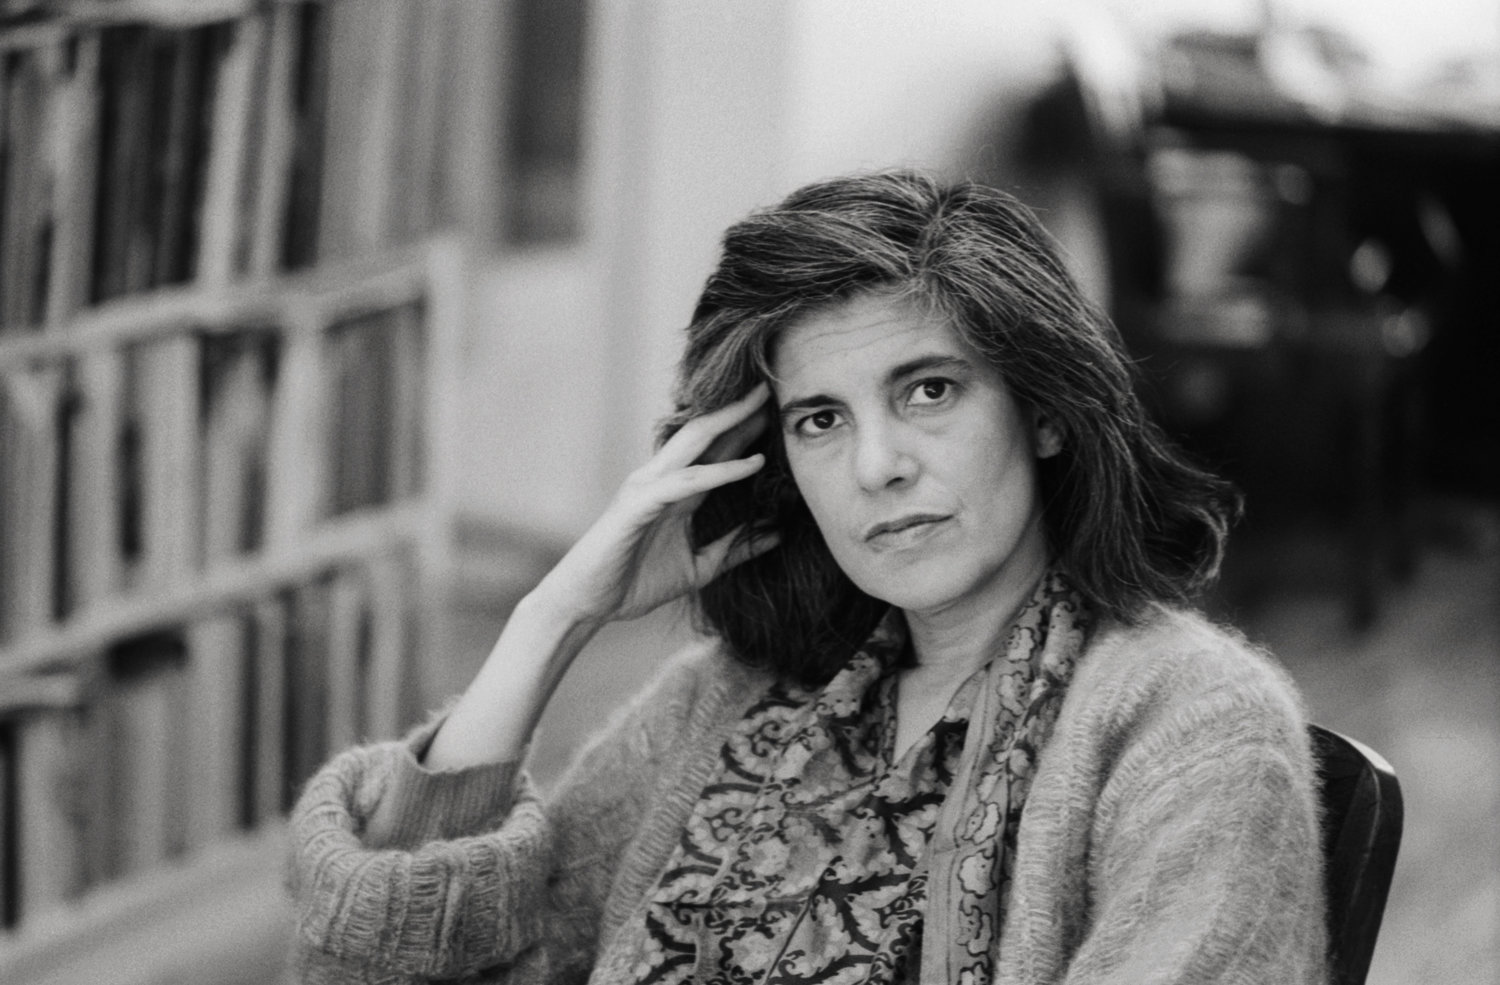 susan sontag explores the primitive and the modern in photography  susan sontag explores the primitive and the modern in photography ""